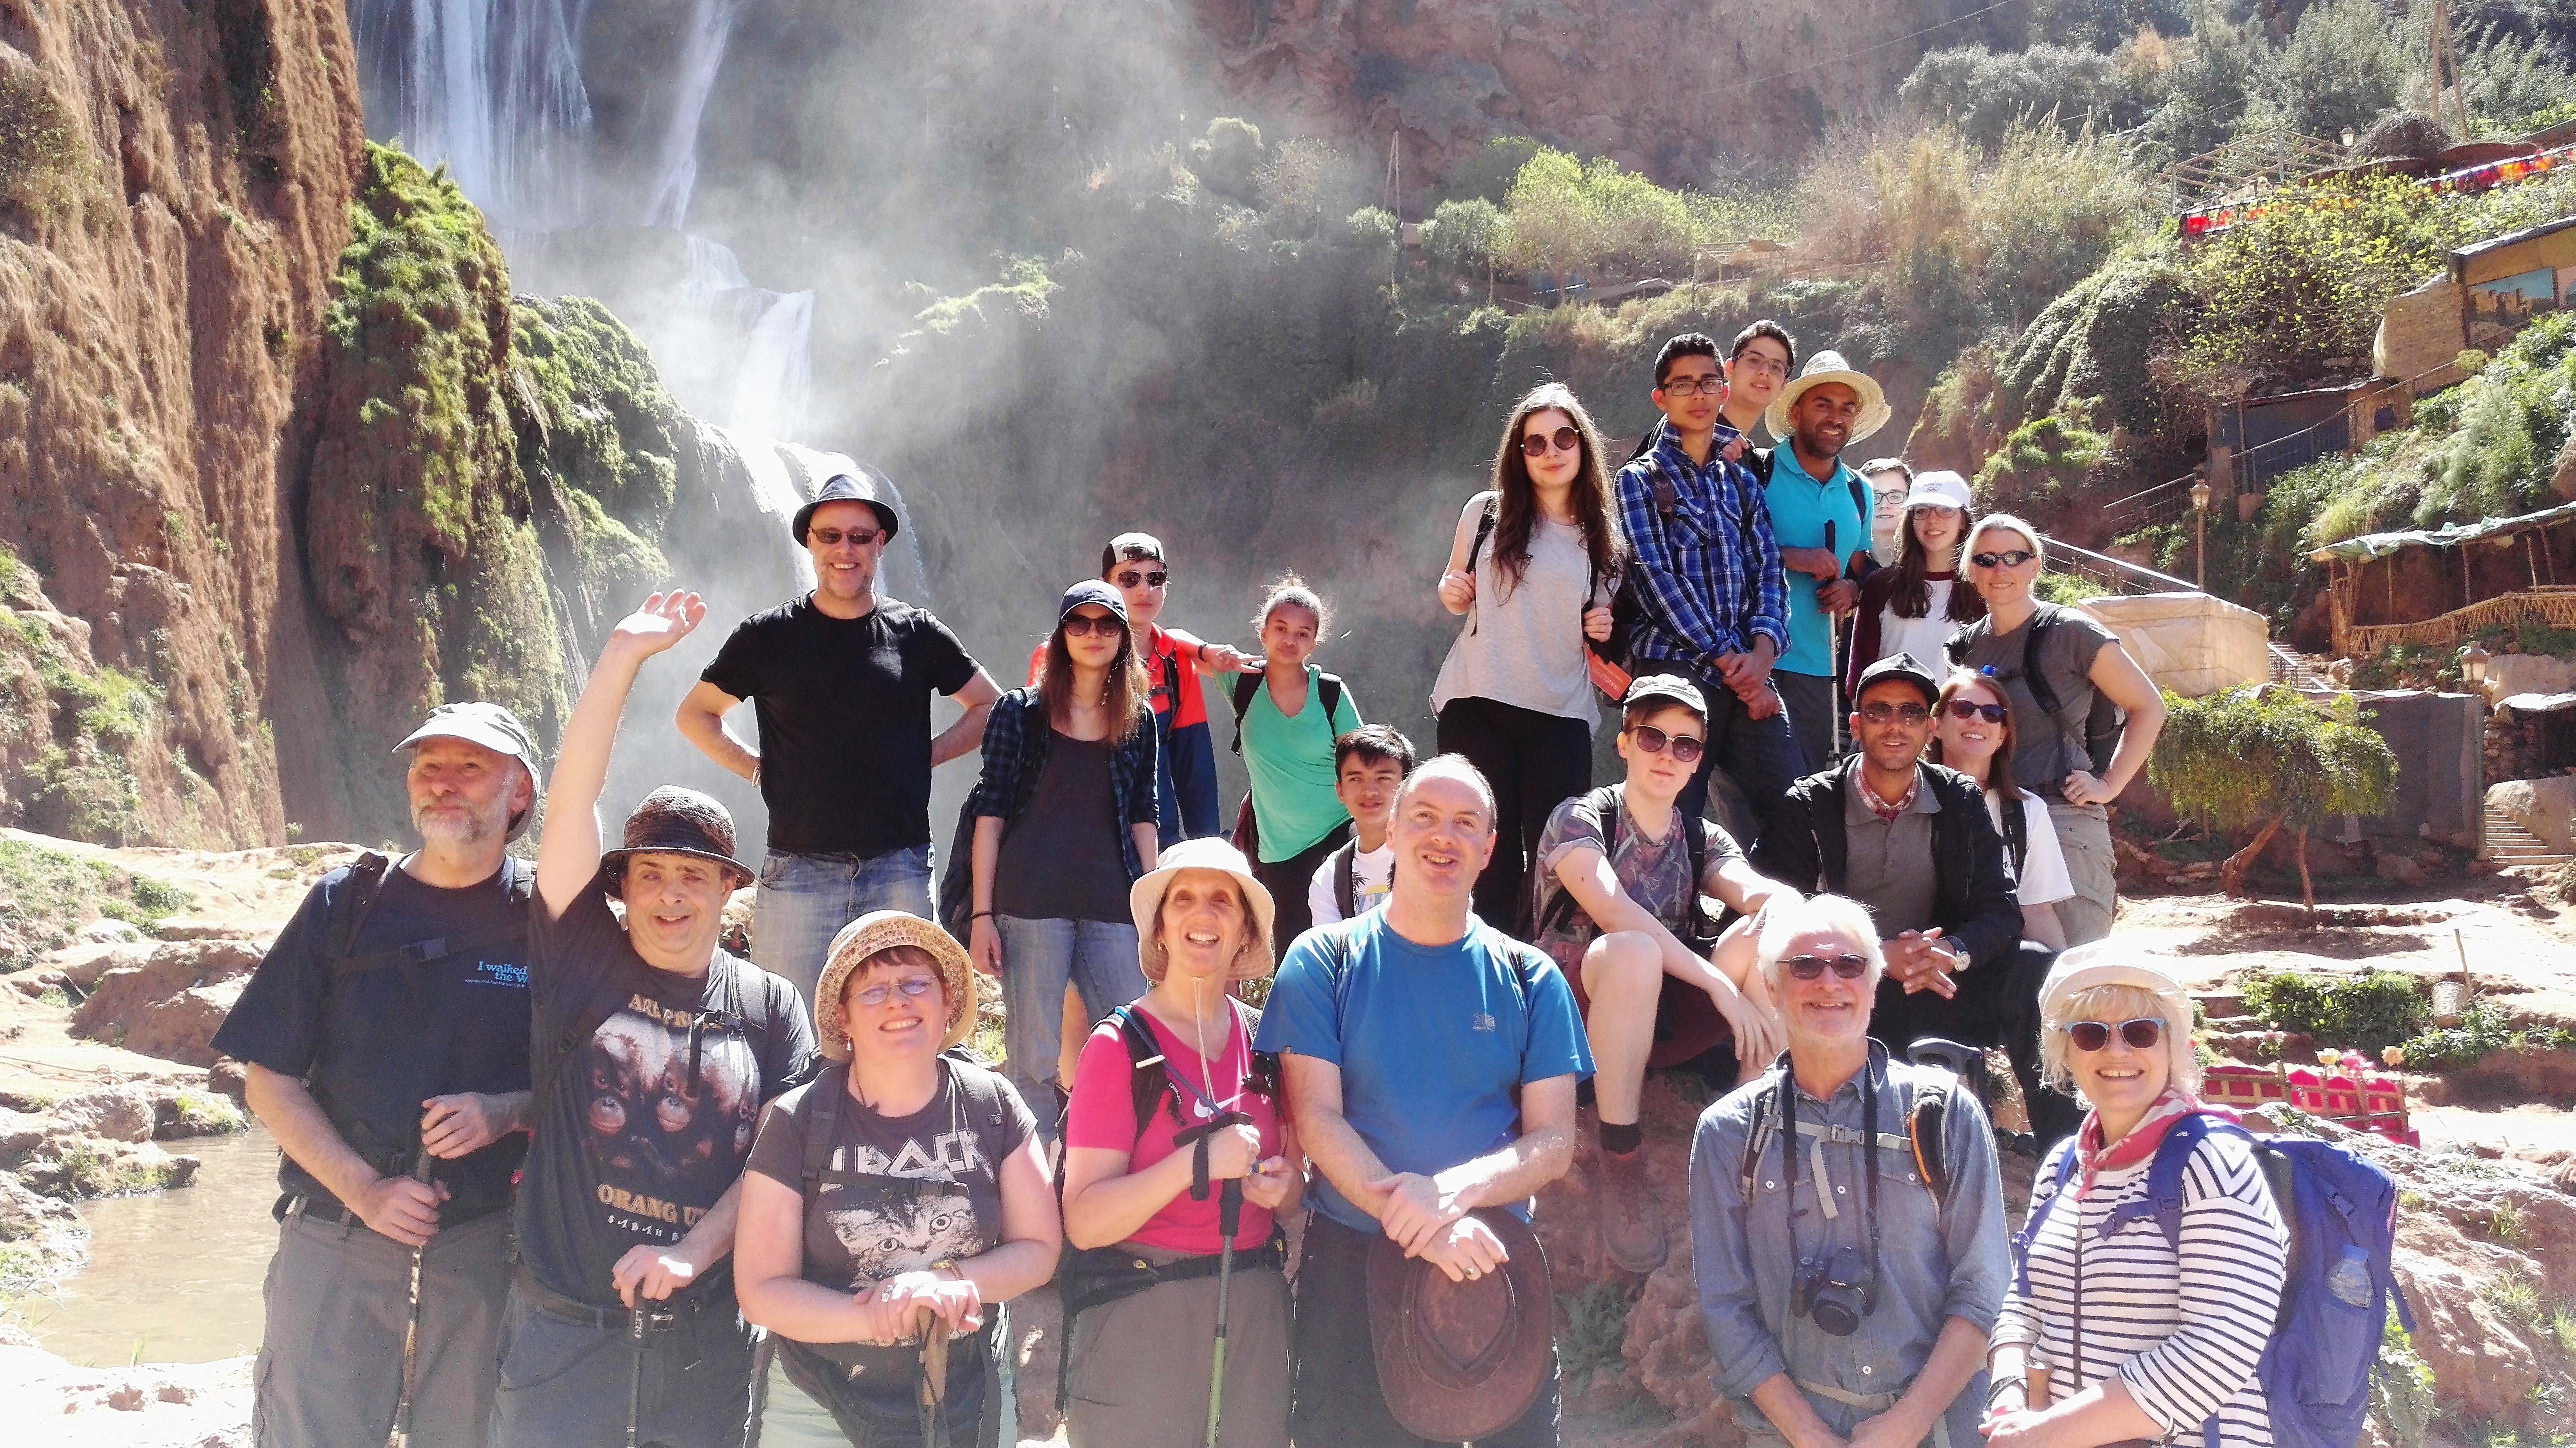 Image of international school students with visually impaired travellers in front of a waterfall.